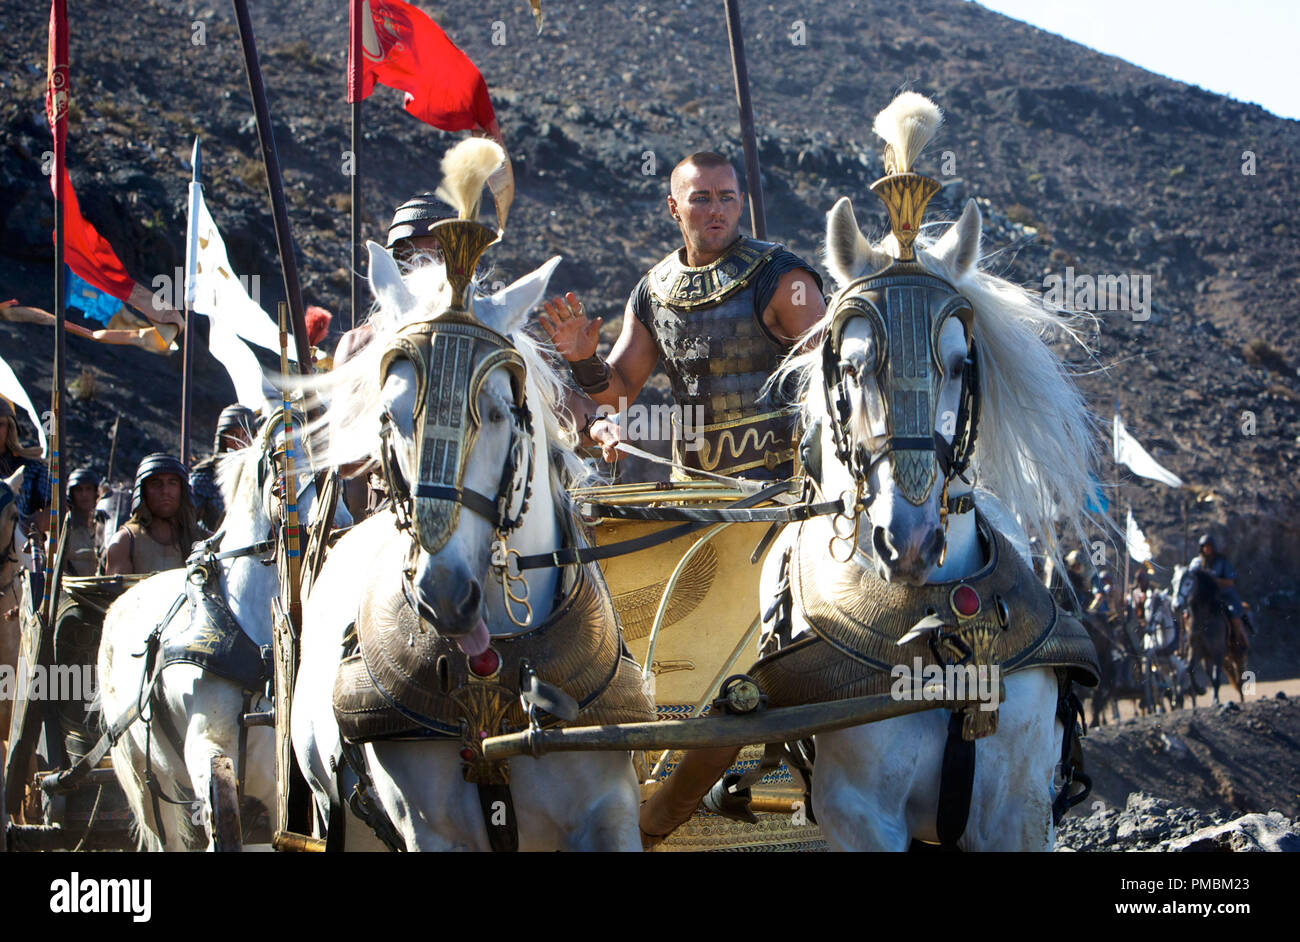 'Exodus: Gods and Kings' (2014) Ramses (Joel Edgerton) and his army pursue the fleeing Hebrews. - Stock Image